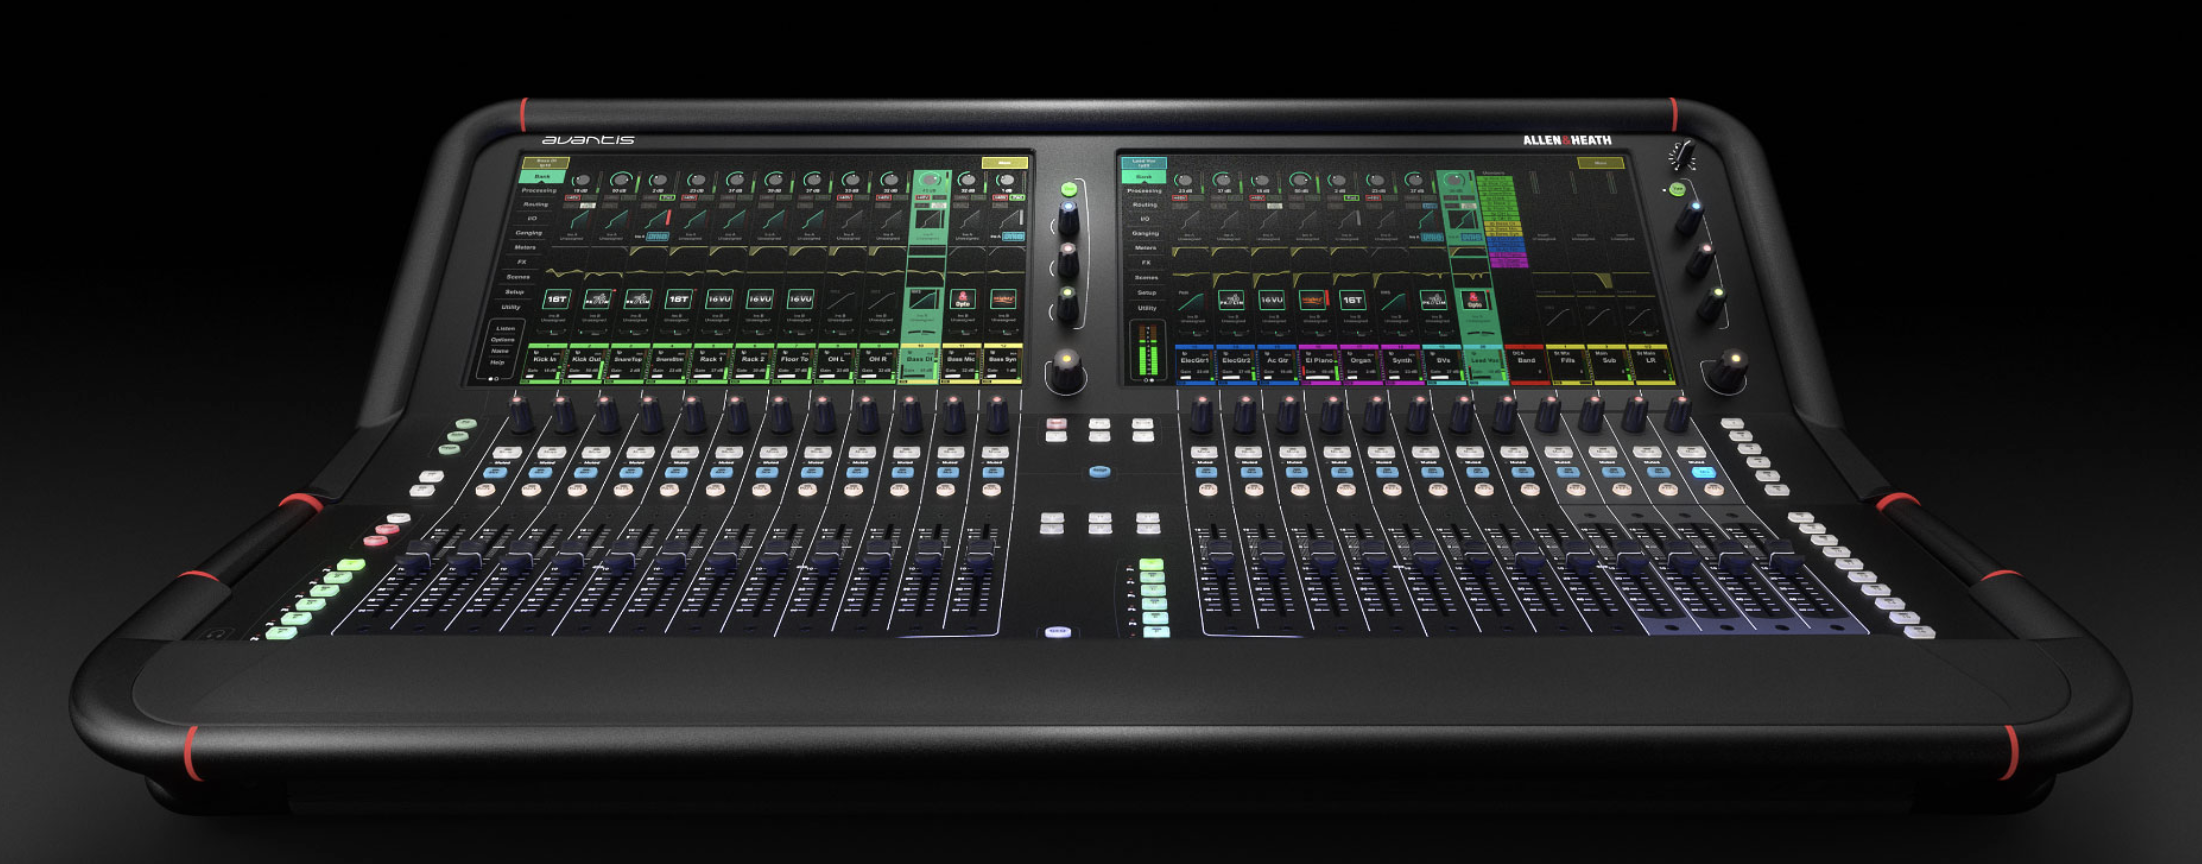 Allen & Heath Announces Third Installment in 96 kHz Mixer Trilogy: Avantis